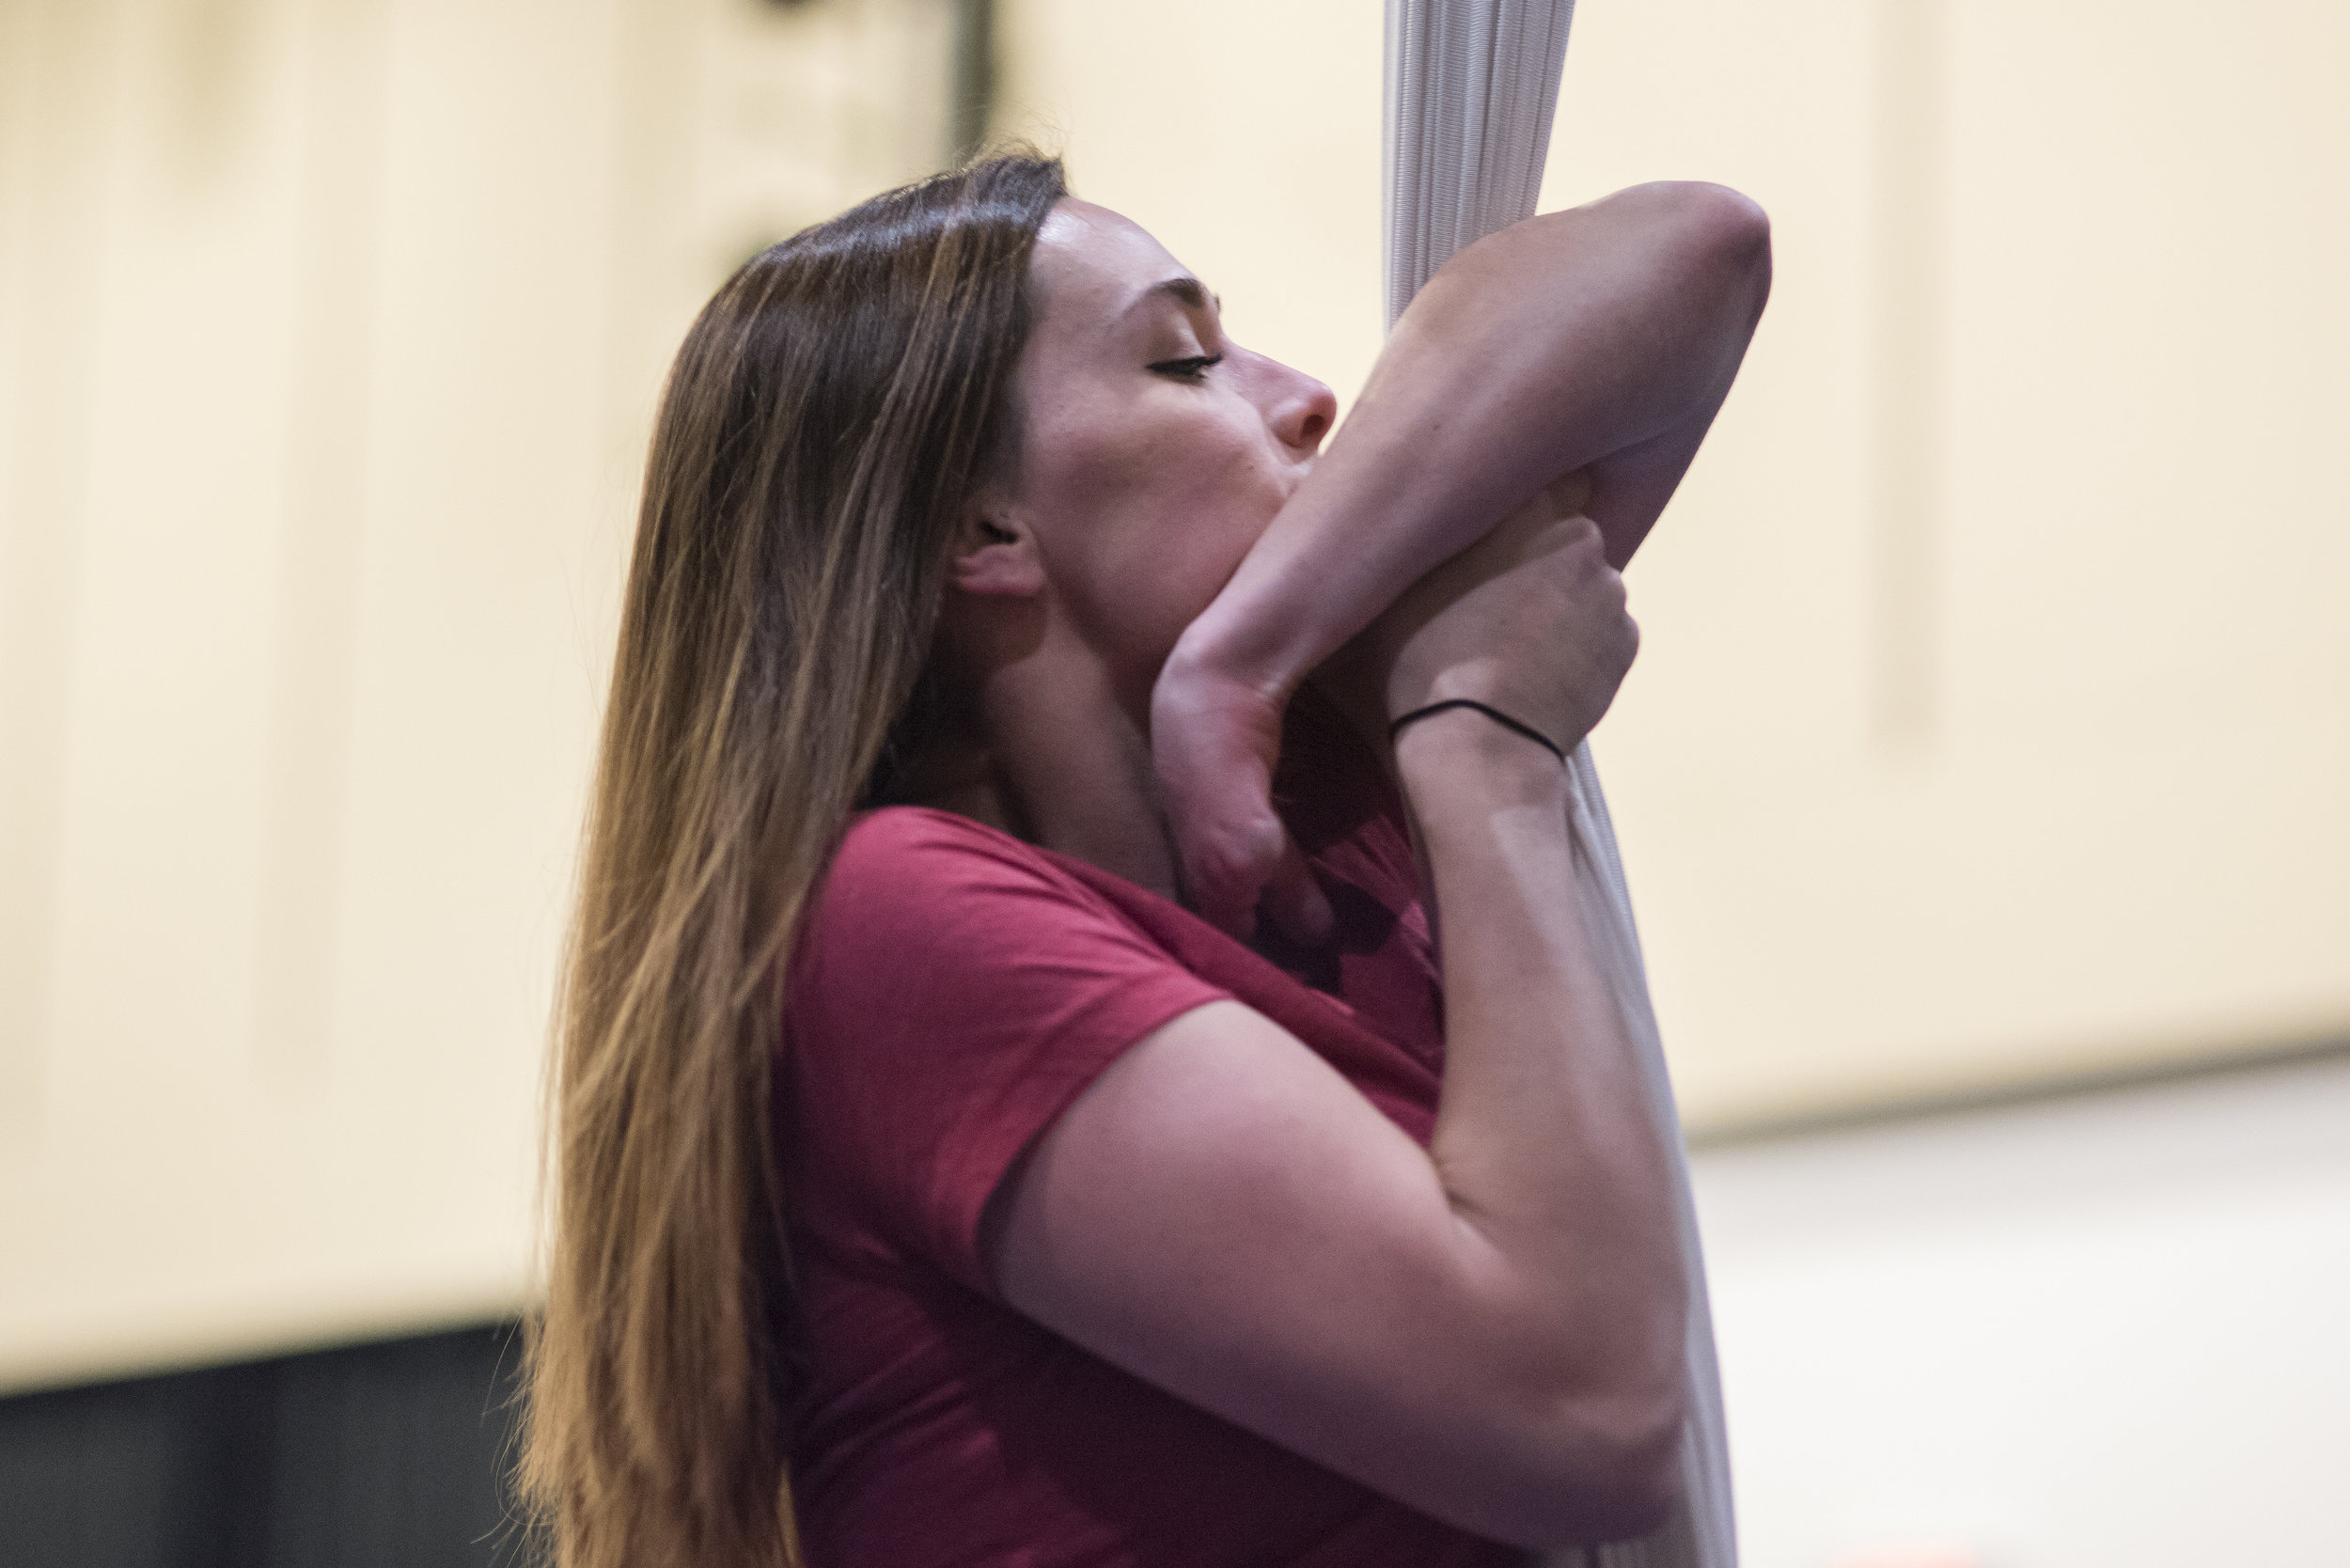 Sarah Tuberty, a graduate student in Boston University's Sargent College, climbs the fabric during a weekly aerial dance class held at BU. Tuberty was born with Symbrachydactyly, a congenital abnormality leaving her with no fingers on her left hand other than a semi-operable thumb.